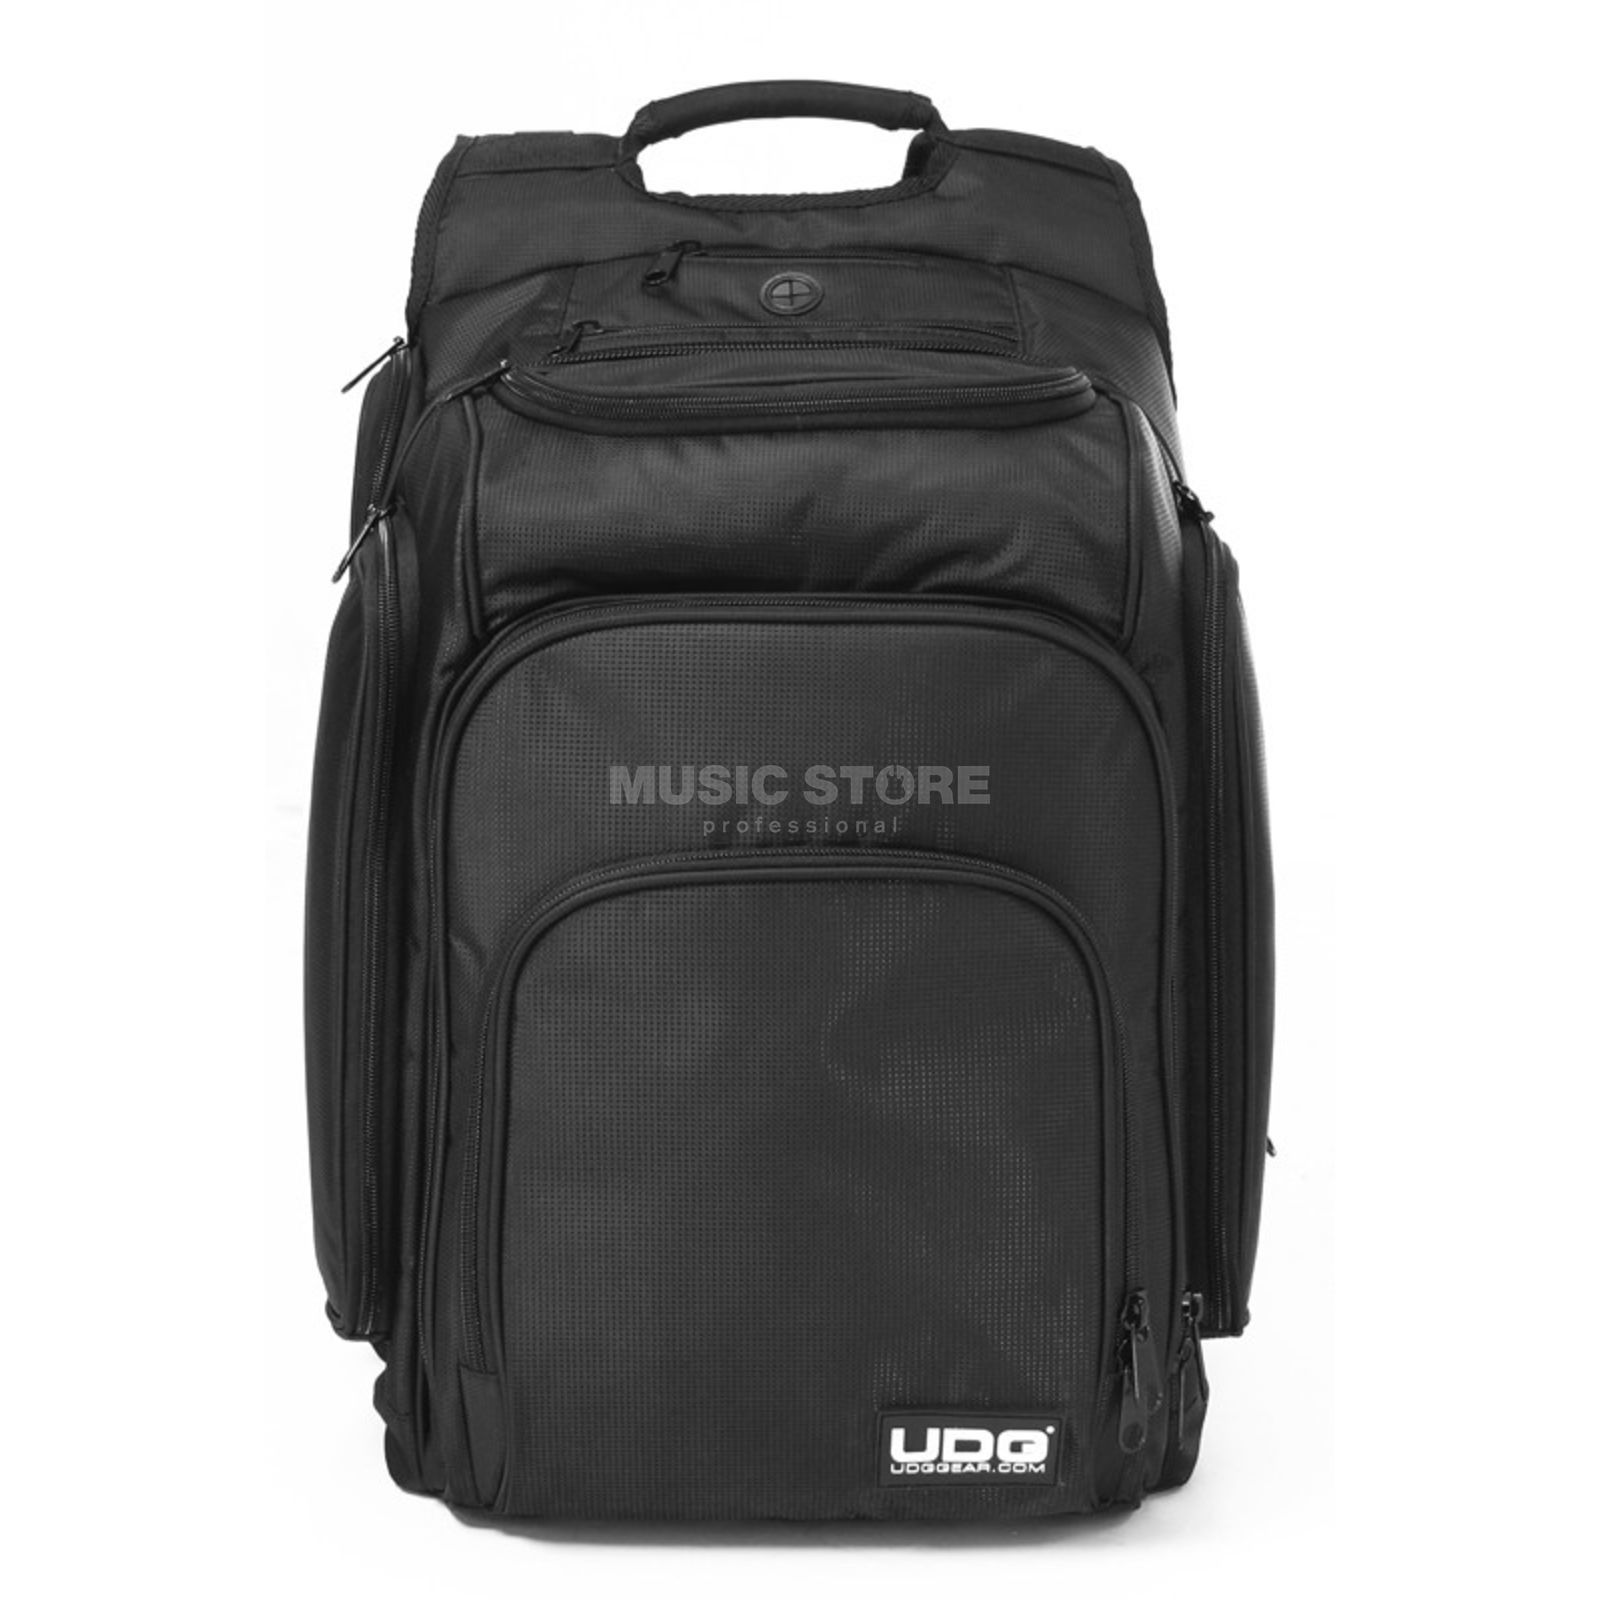 UDG Digi BackPack Black/Orange (U9101BL/OR) Immagine prodotto